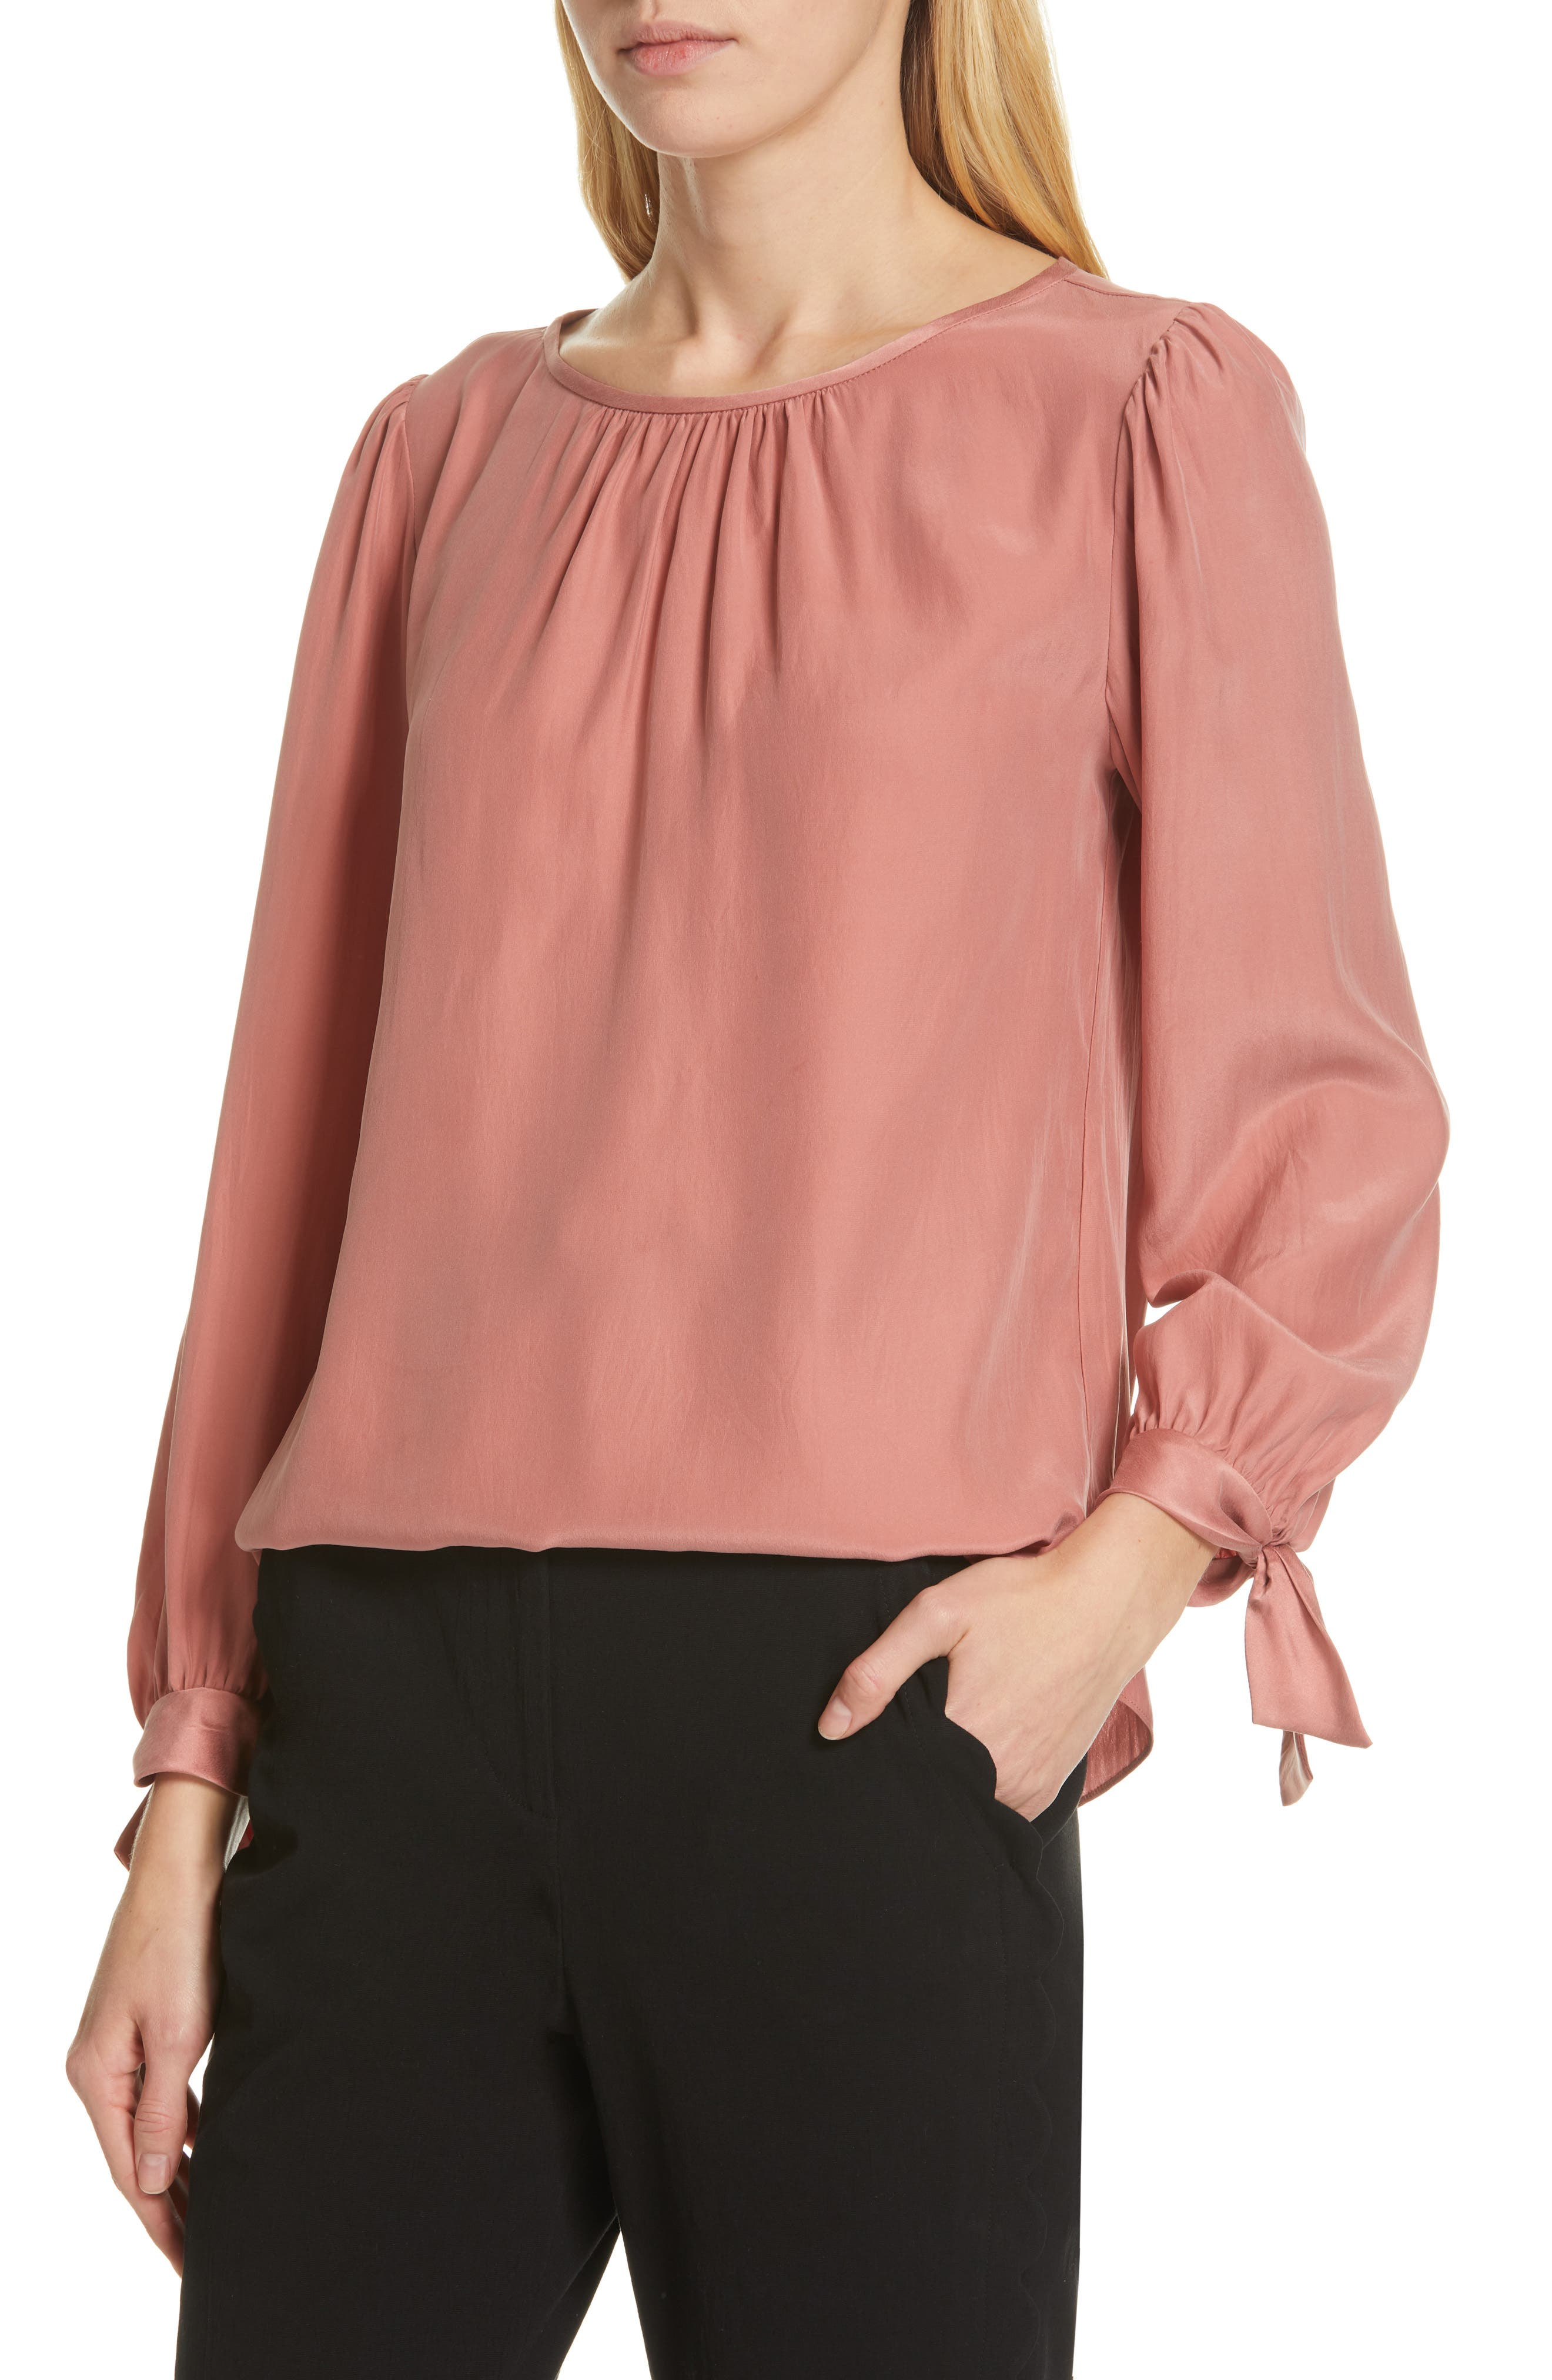 TAILORED BY REBECCA TAYLOR,                             Sleeve Tie Silk Charmeuse Top,                             Alternate thumbnail 4, color,                             LIPGLOSS